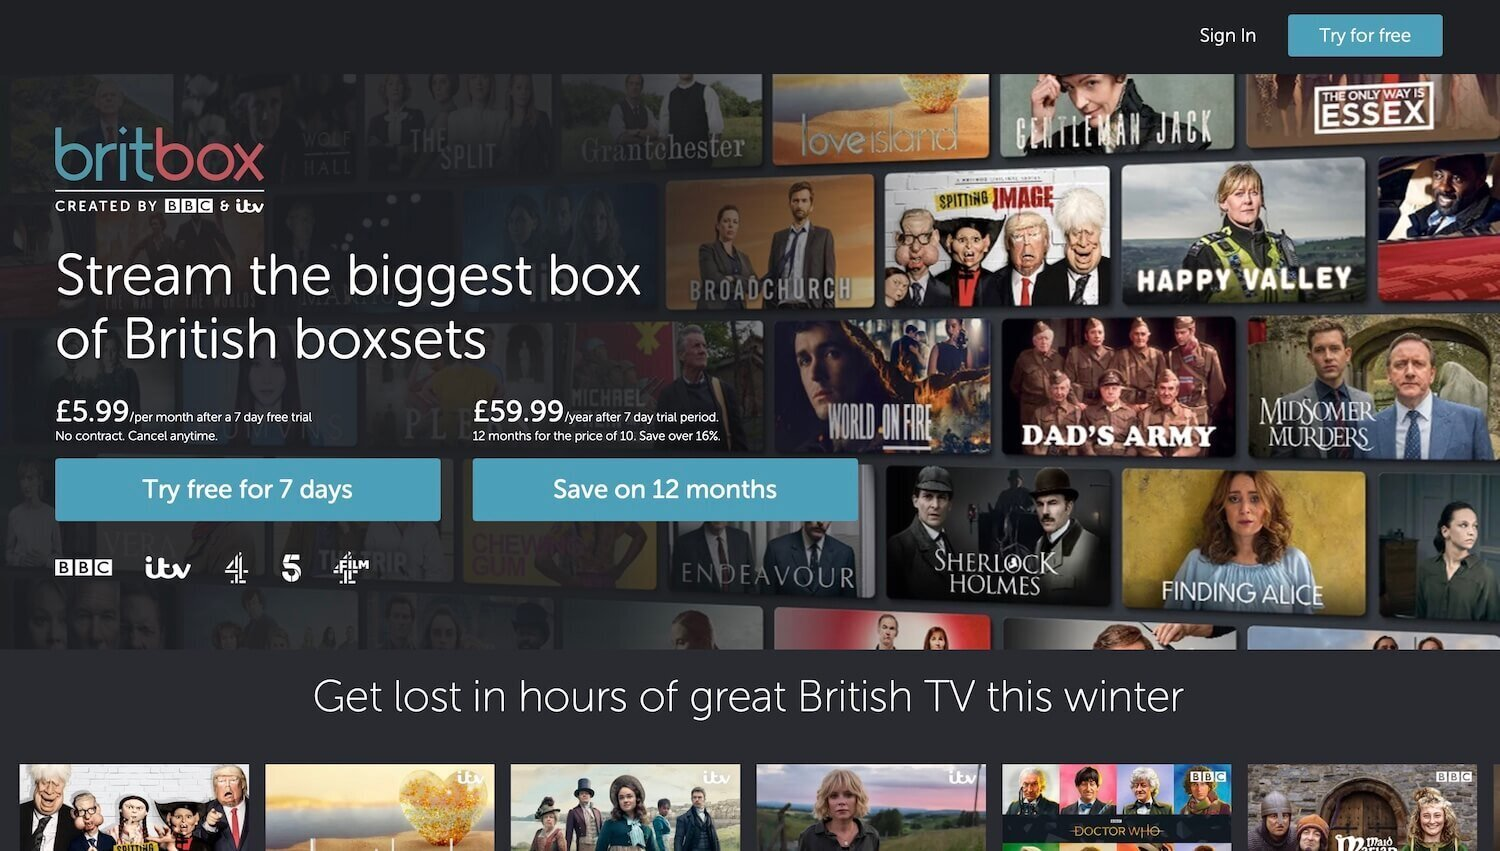 Britbox Streaming Service Deals and Free Trials UK